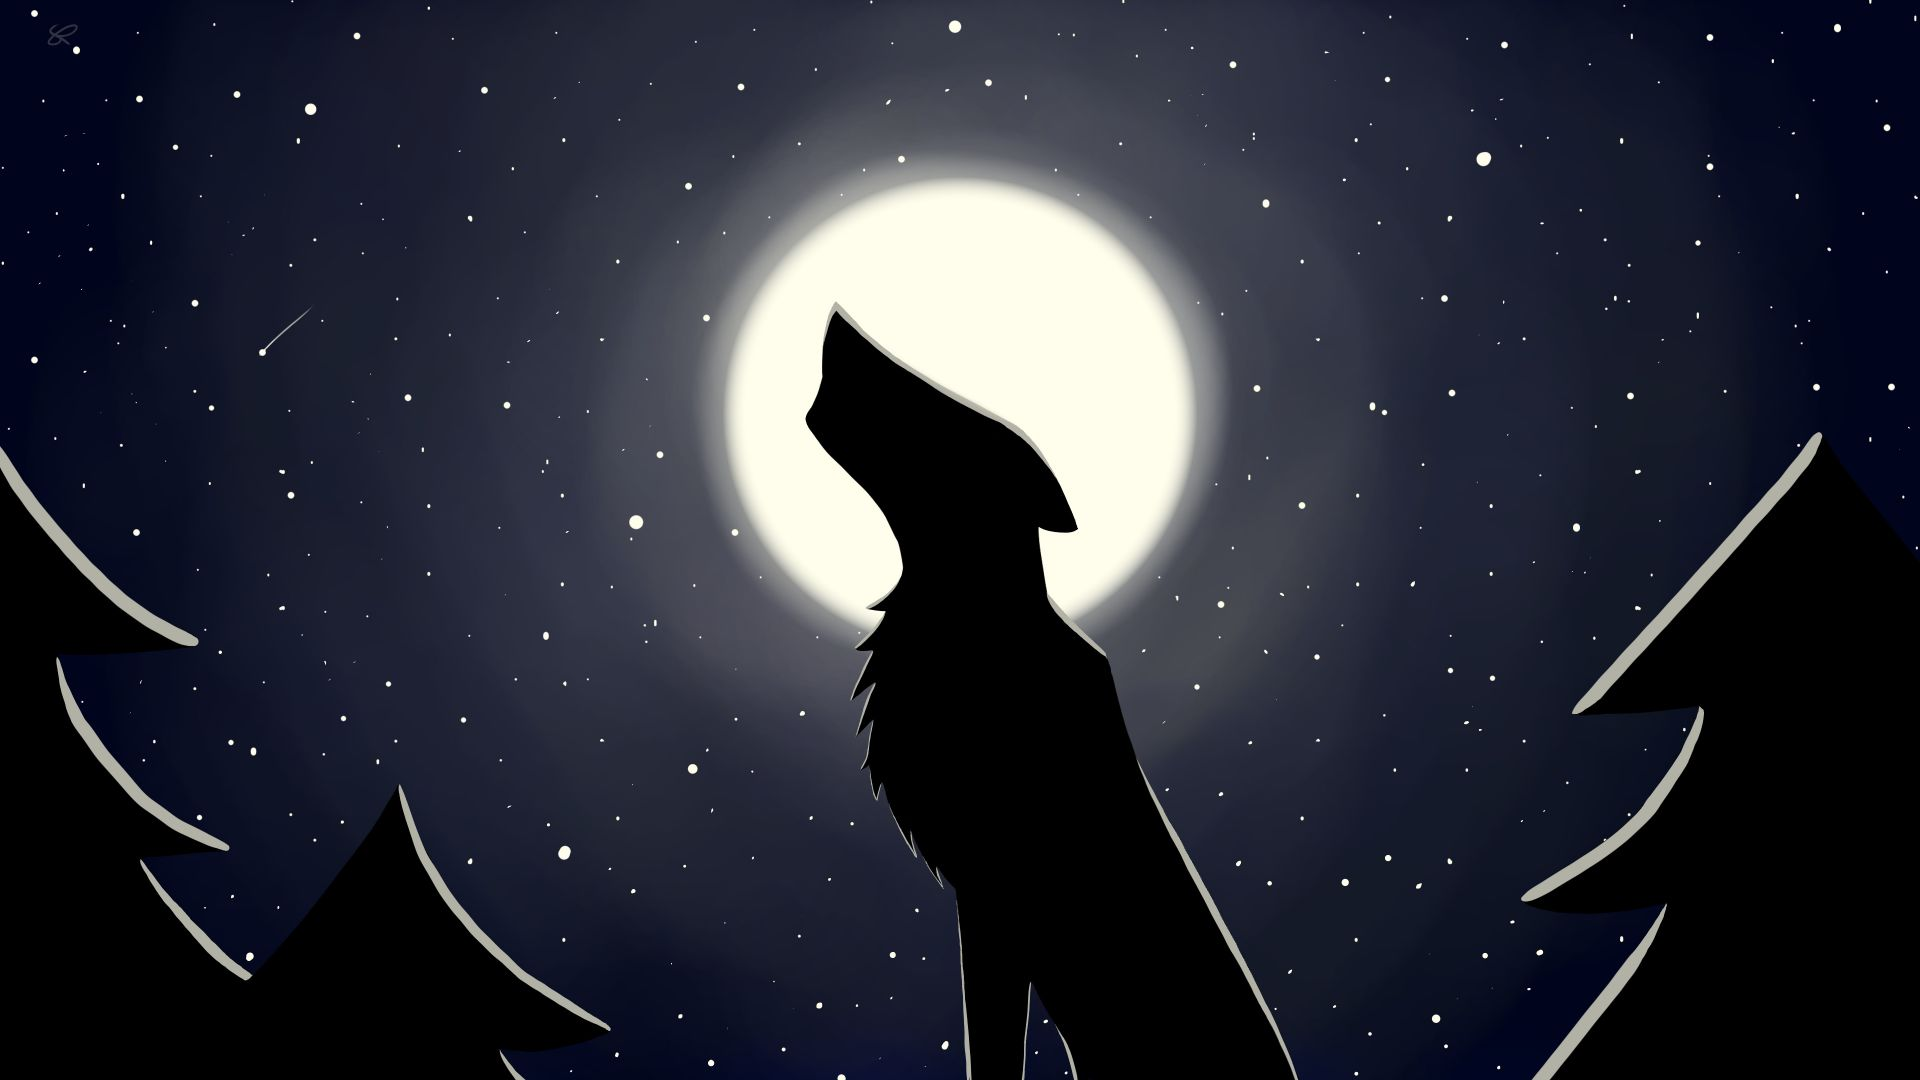 Desktop wallpapers wolf, moon, minimal, starry night, digital art, hd image, picture, background, 4aa612